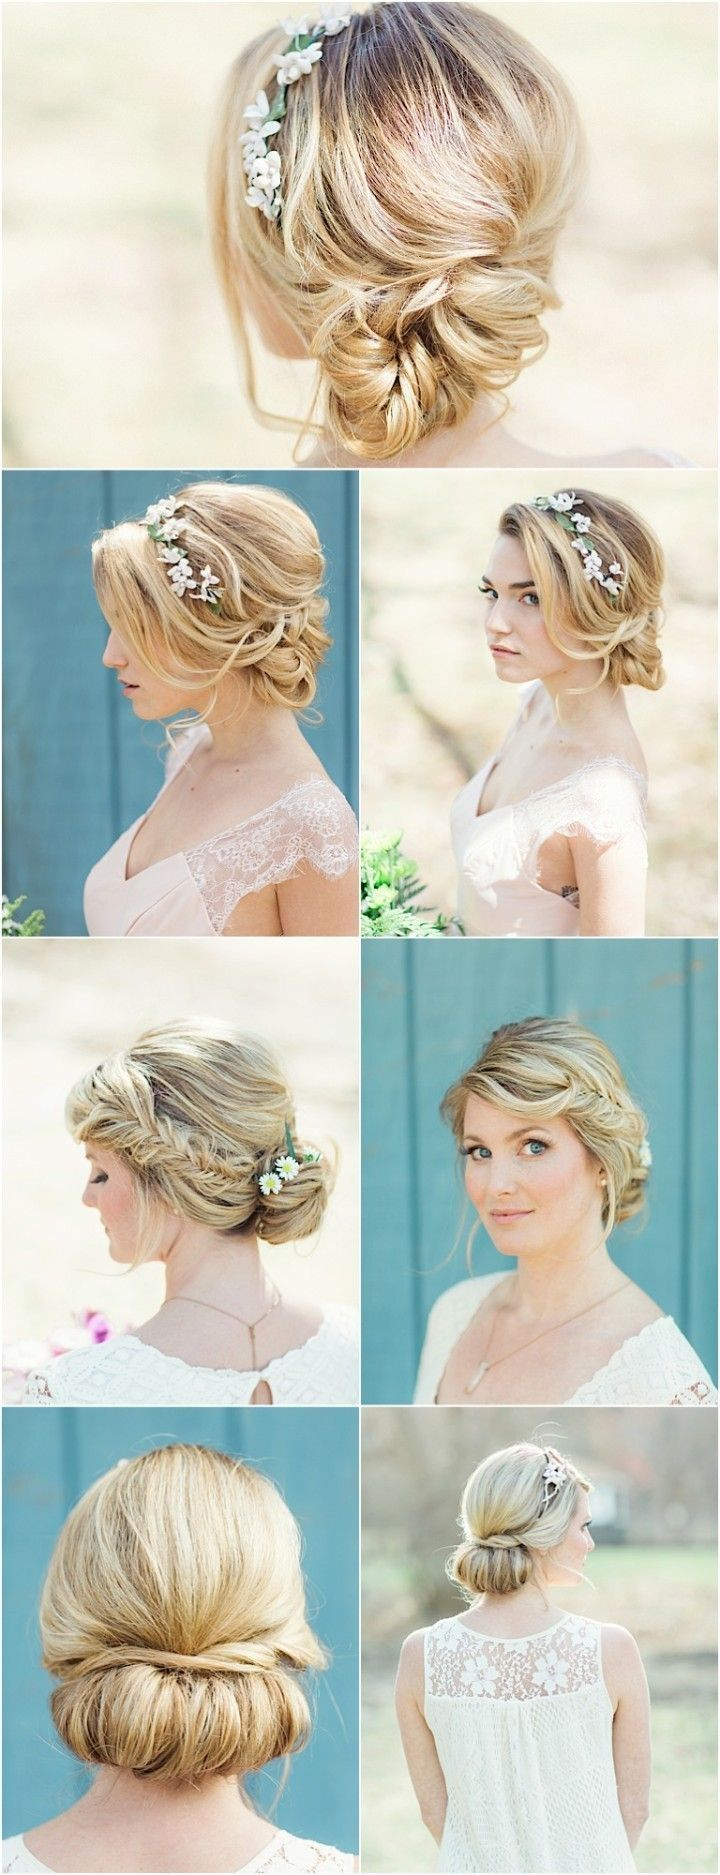 Flower Power: Classic Floral Wedding Hairstyles by Jackie Schneider Popular wedding hairstyles. Add a bohemian detail with flowers in your hair Flower…